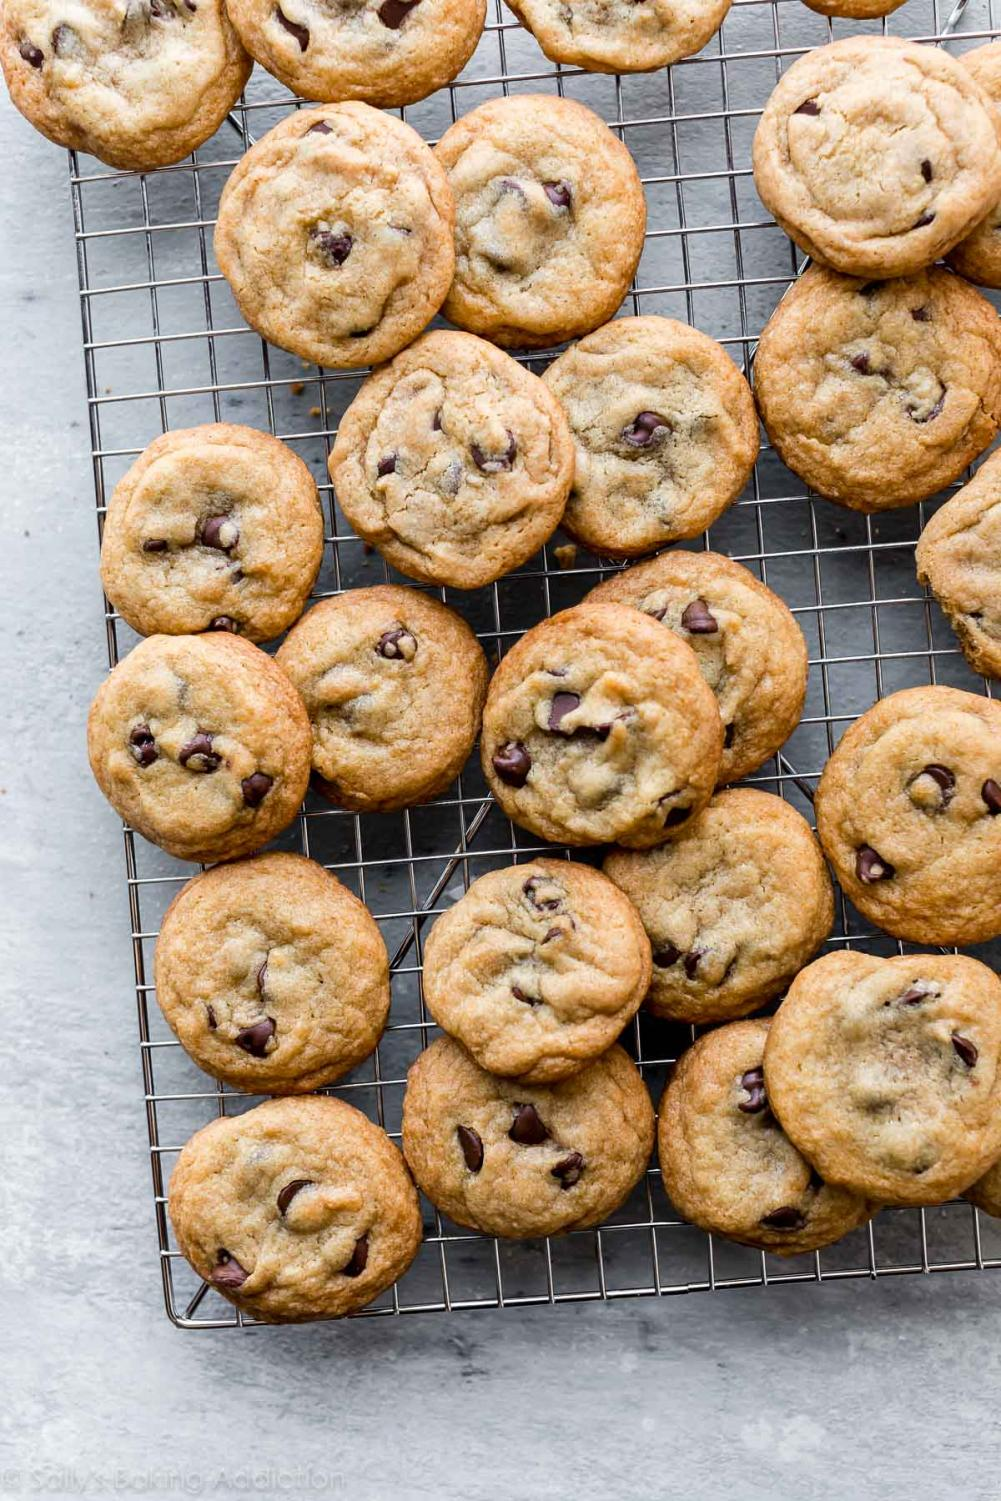 A new batch of chocolate chip cookies. | photo from Google Images